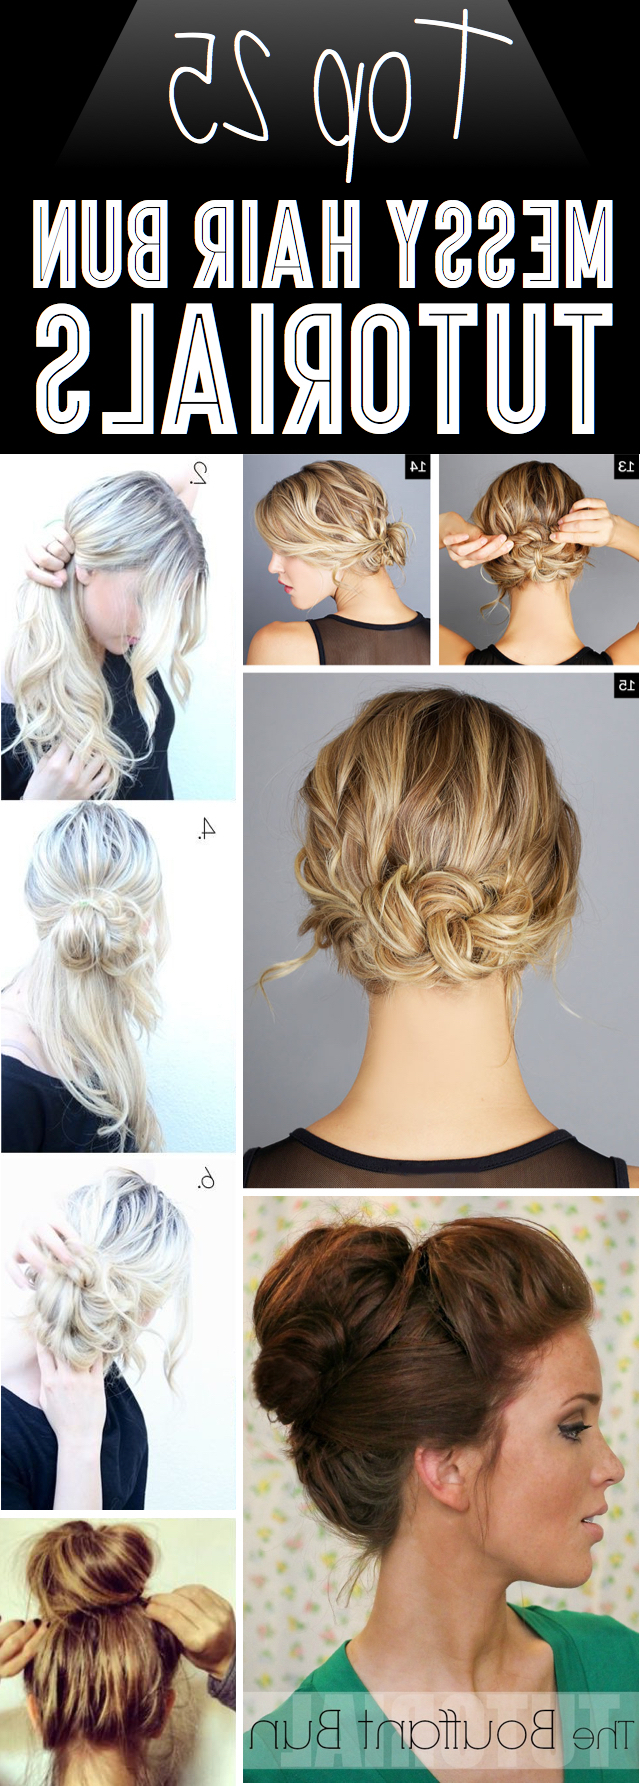 Favorite Elegant High Bouffant Bun Hairstyles Intended For Top 25 Messy Hair Bun Tutorials Perfect For Those Lazy (View 10 of 20)